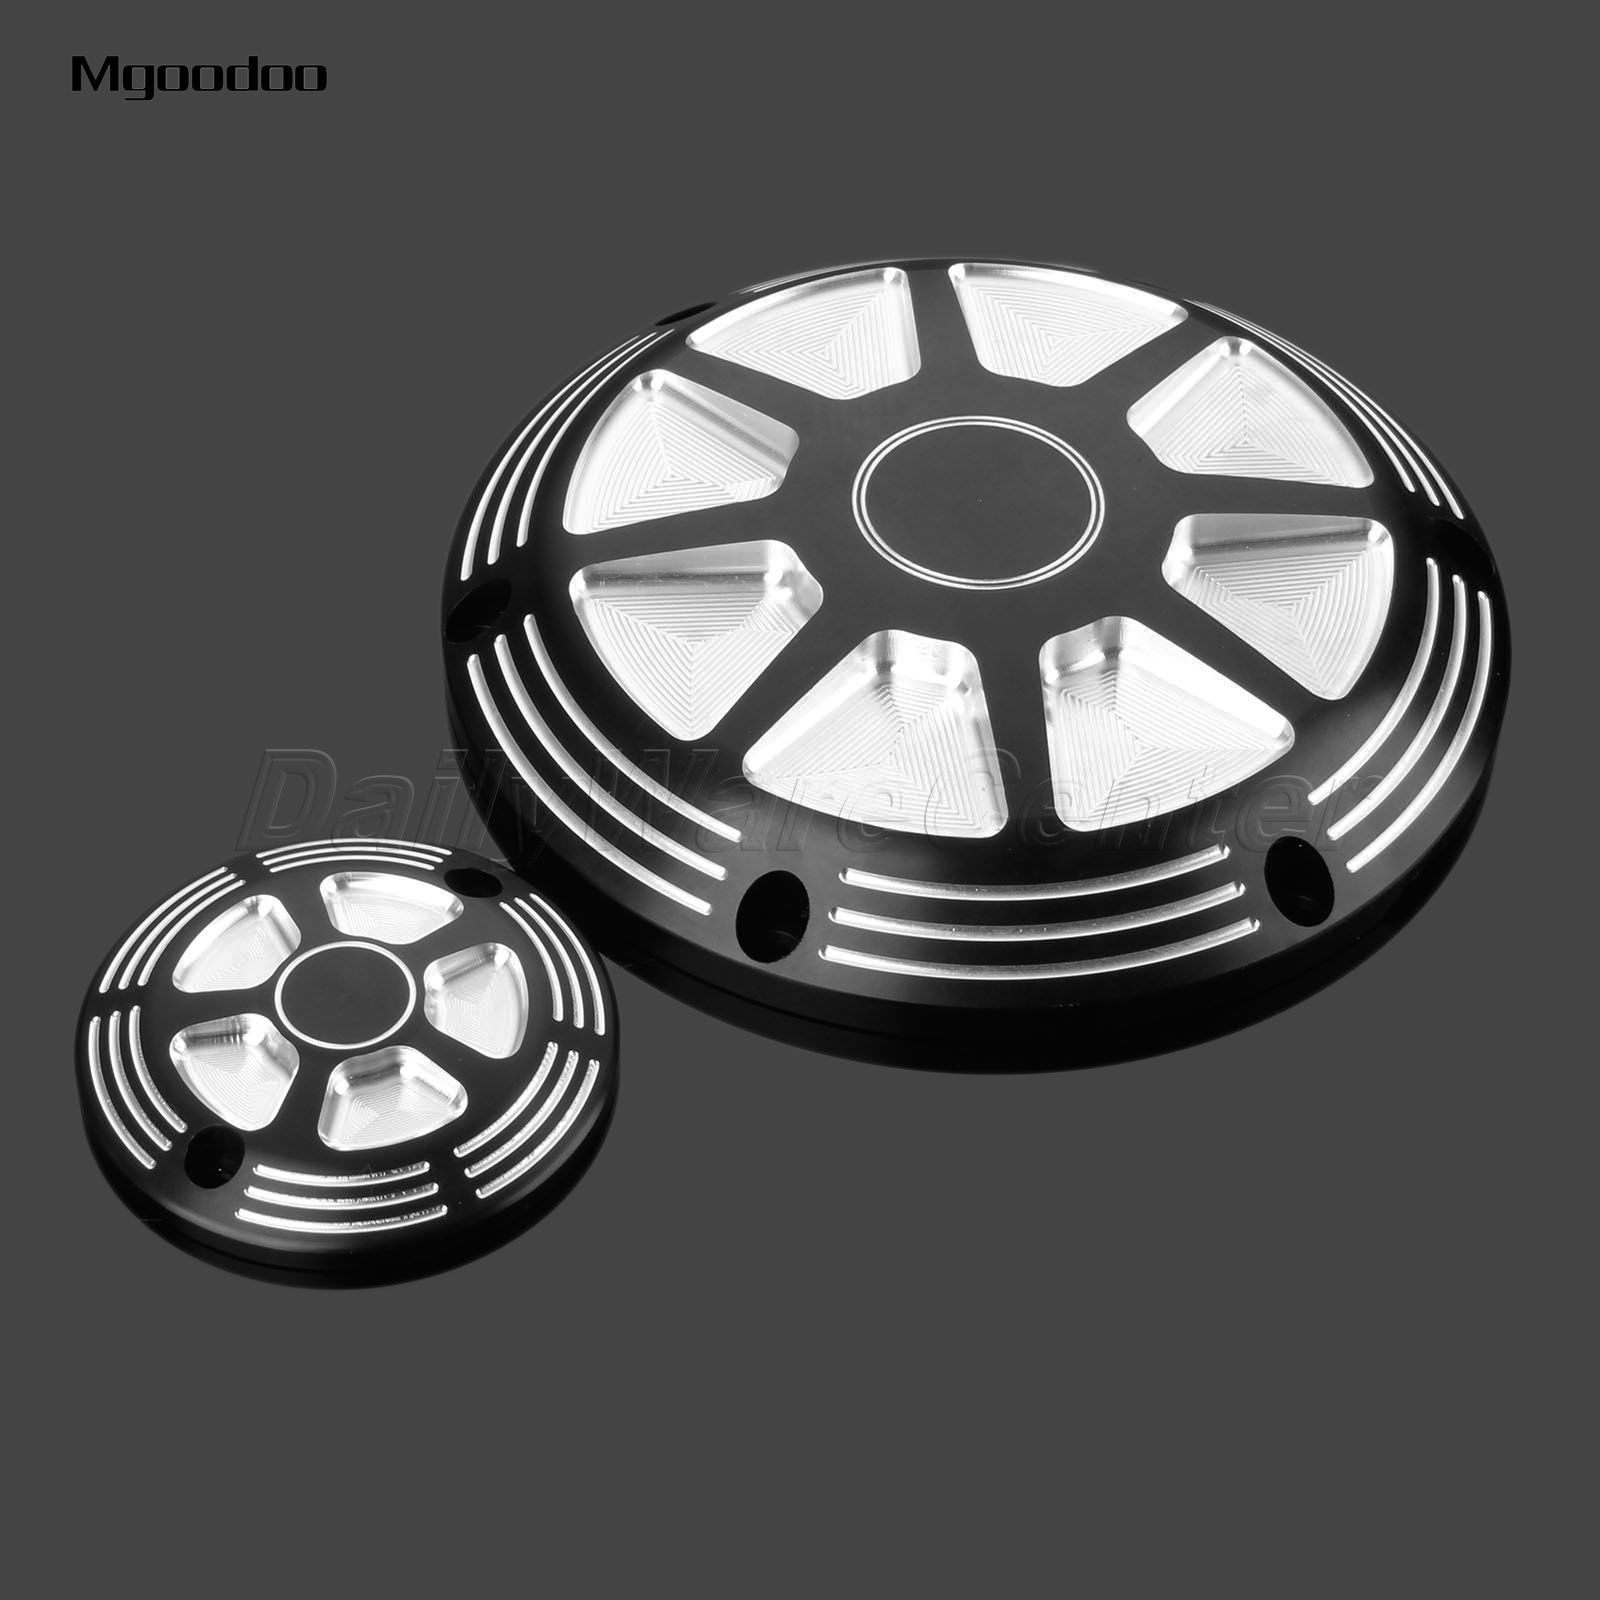 2017 CNC Aluminum Motorcycle Derby Cover Timing Timer Covers For Harley Davidson XLH XL 883 883L 1200C 1200L Sportster 883N Iron 1set motorcycle derby cover timing timer covers cnc aluminum for harley davidson xlh xl 883 883l 1200c 1200l sportster 883n iron